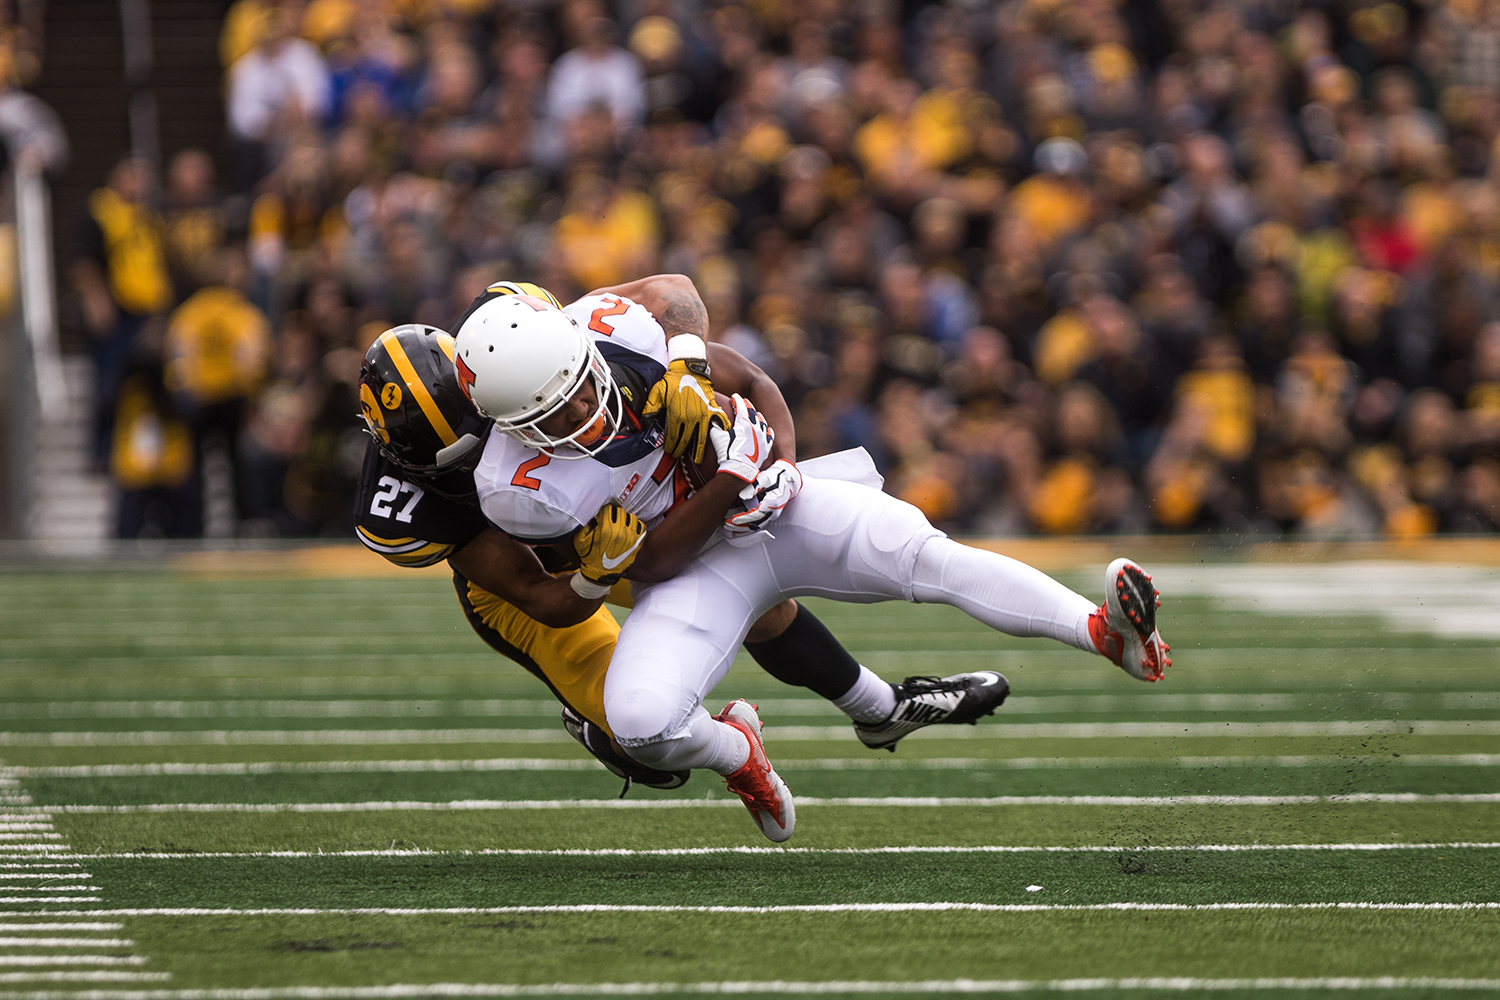 Iowa defensive back Amani Hooker tackles Illinois' running back Reggie Corbin in the second quarter of the Iowa/Illinois football game on Saturday, Oct. 7, 2017.